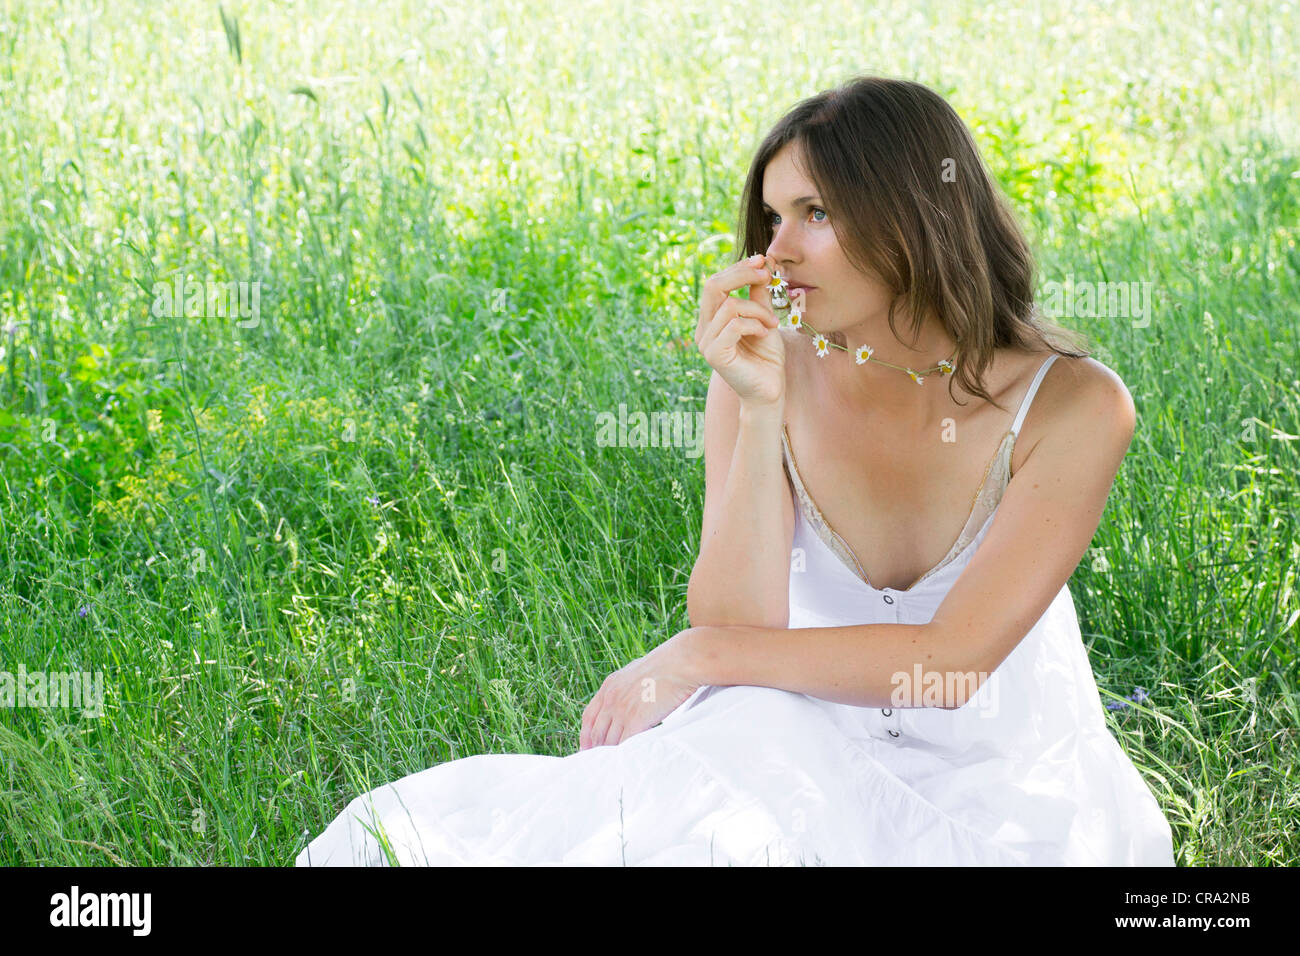 Beautiful young woman holds a daisy chain, sitting in a meadow - Stock Image